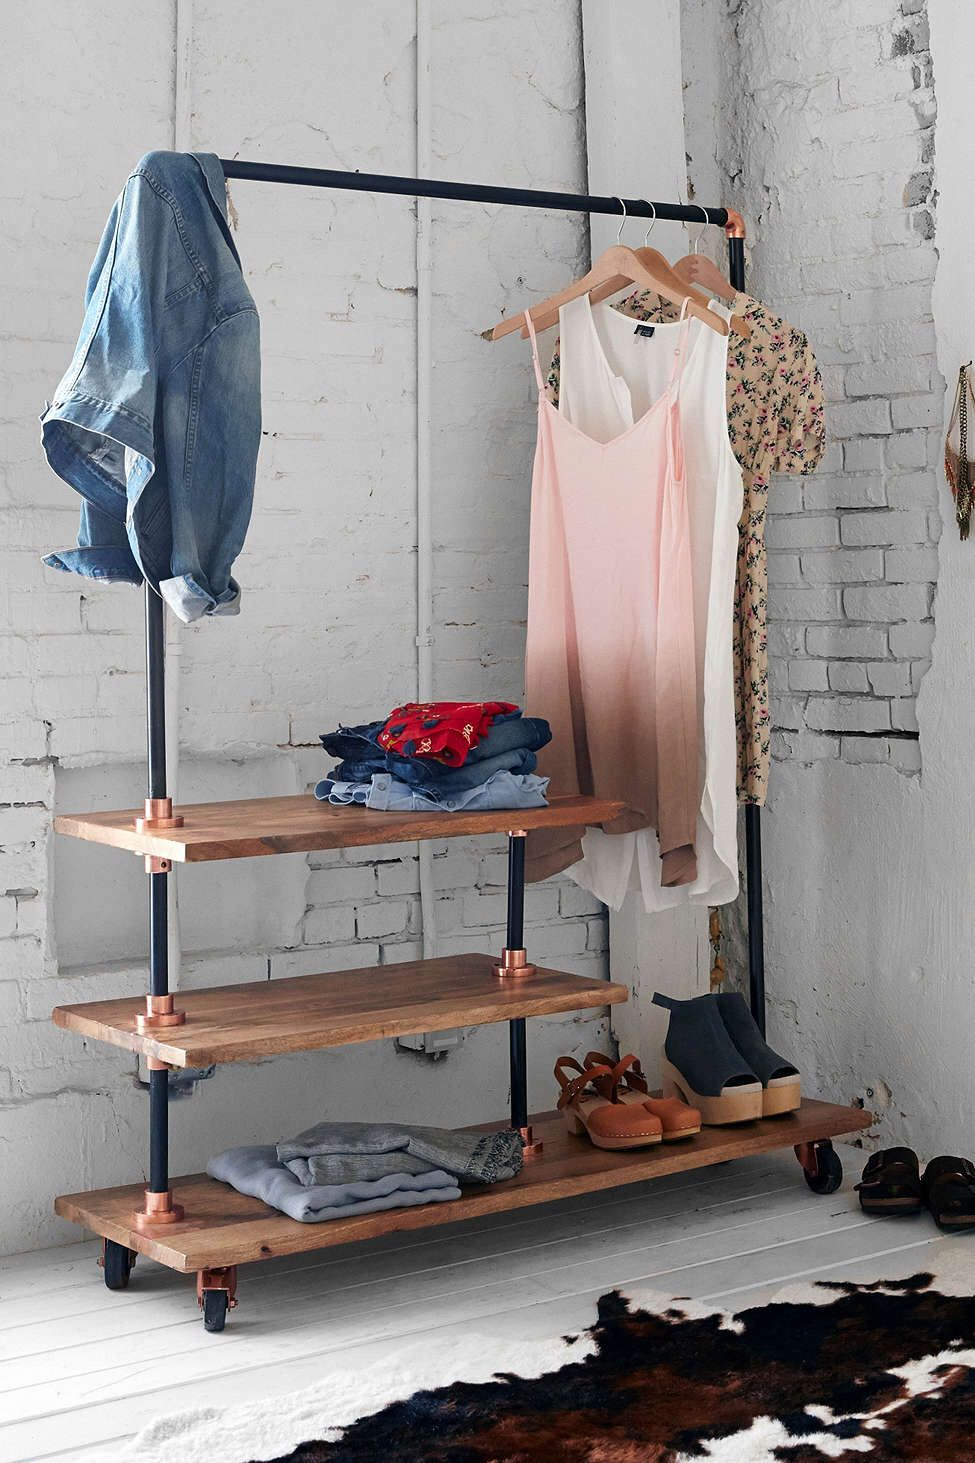 Merveilleux Copper + Pipe + Wood Rolling Wardrobe Rack | URBAN OUTFITTERS